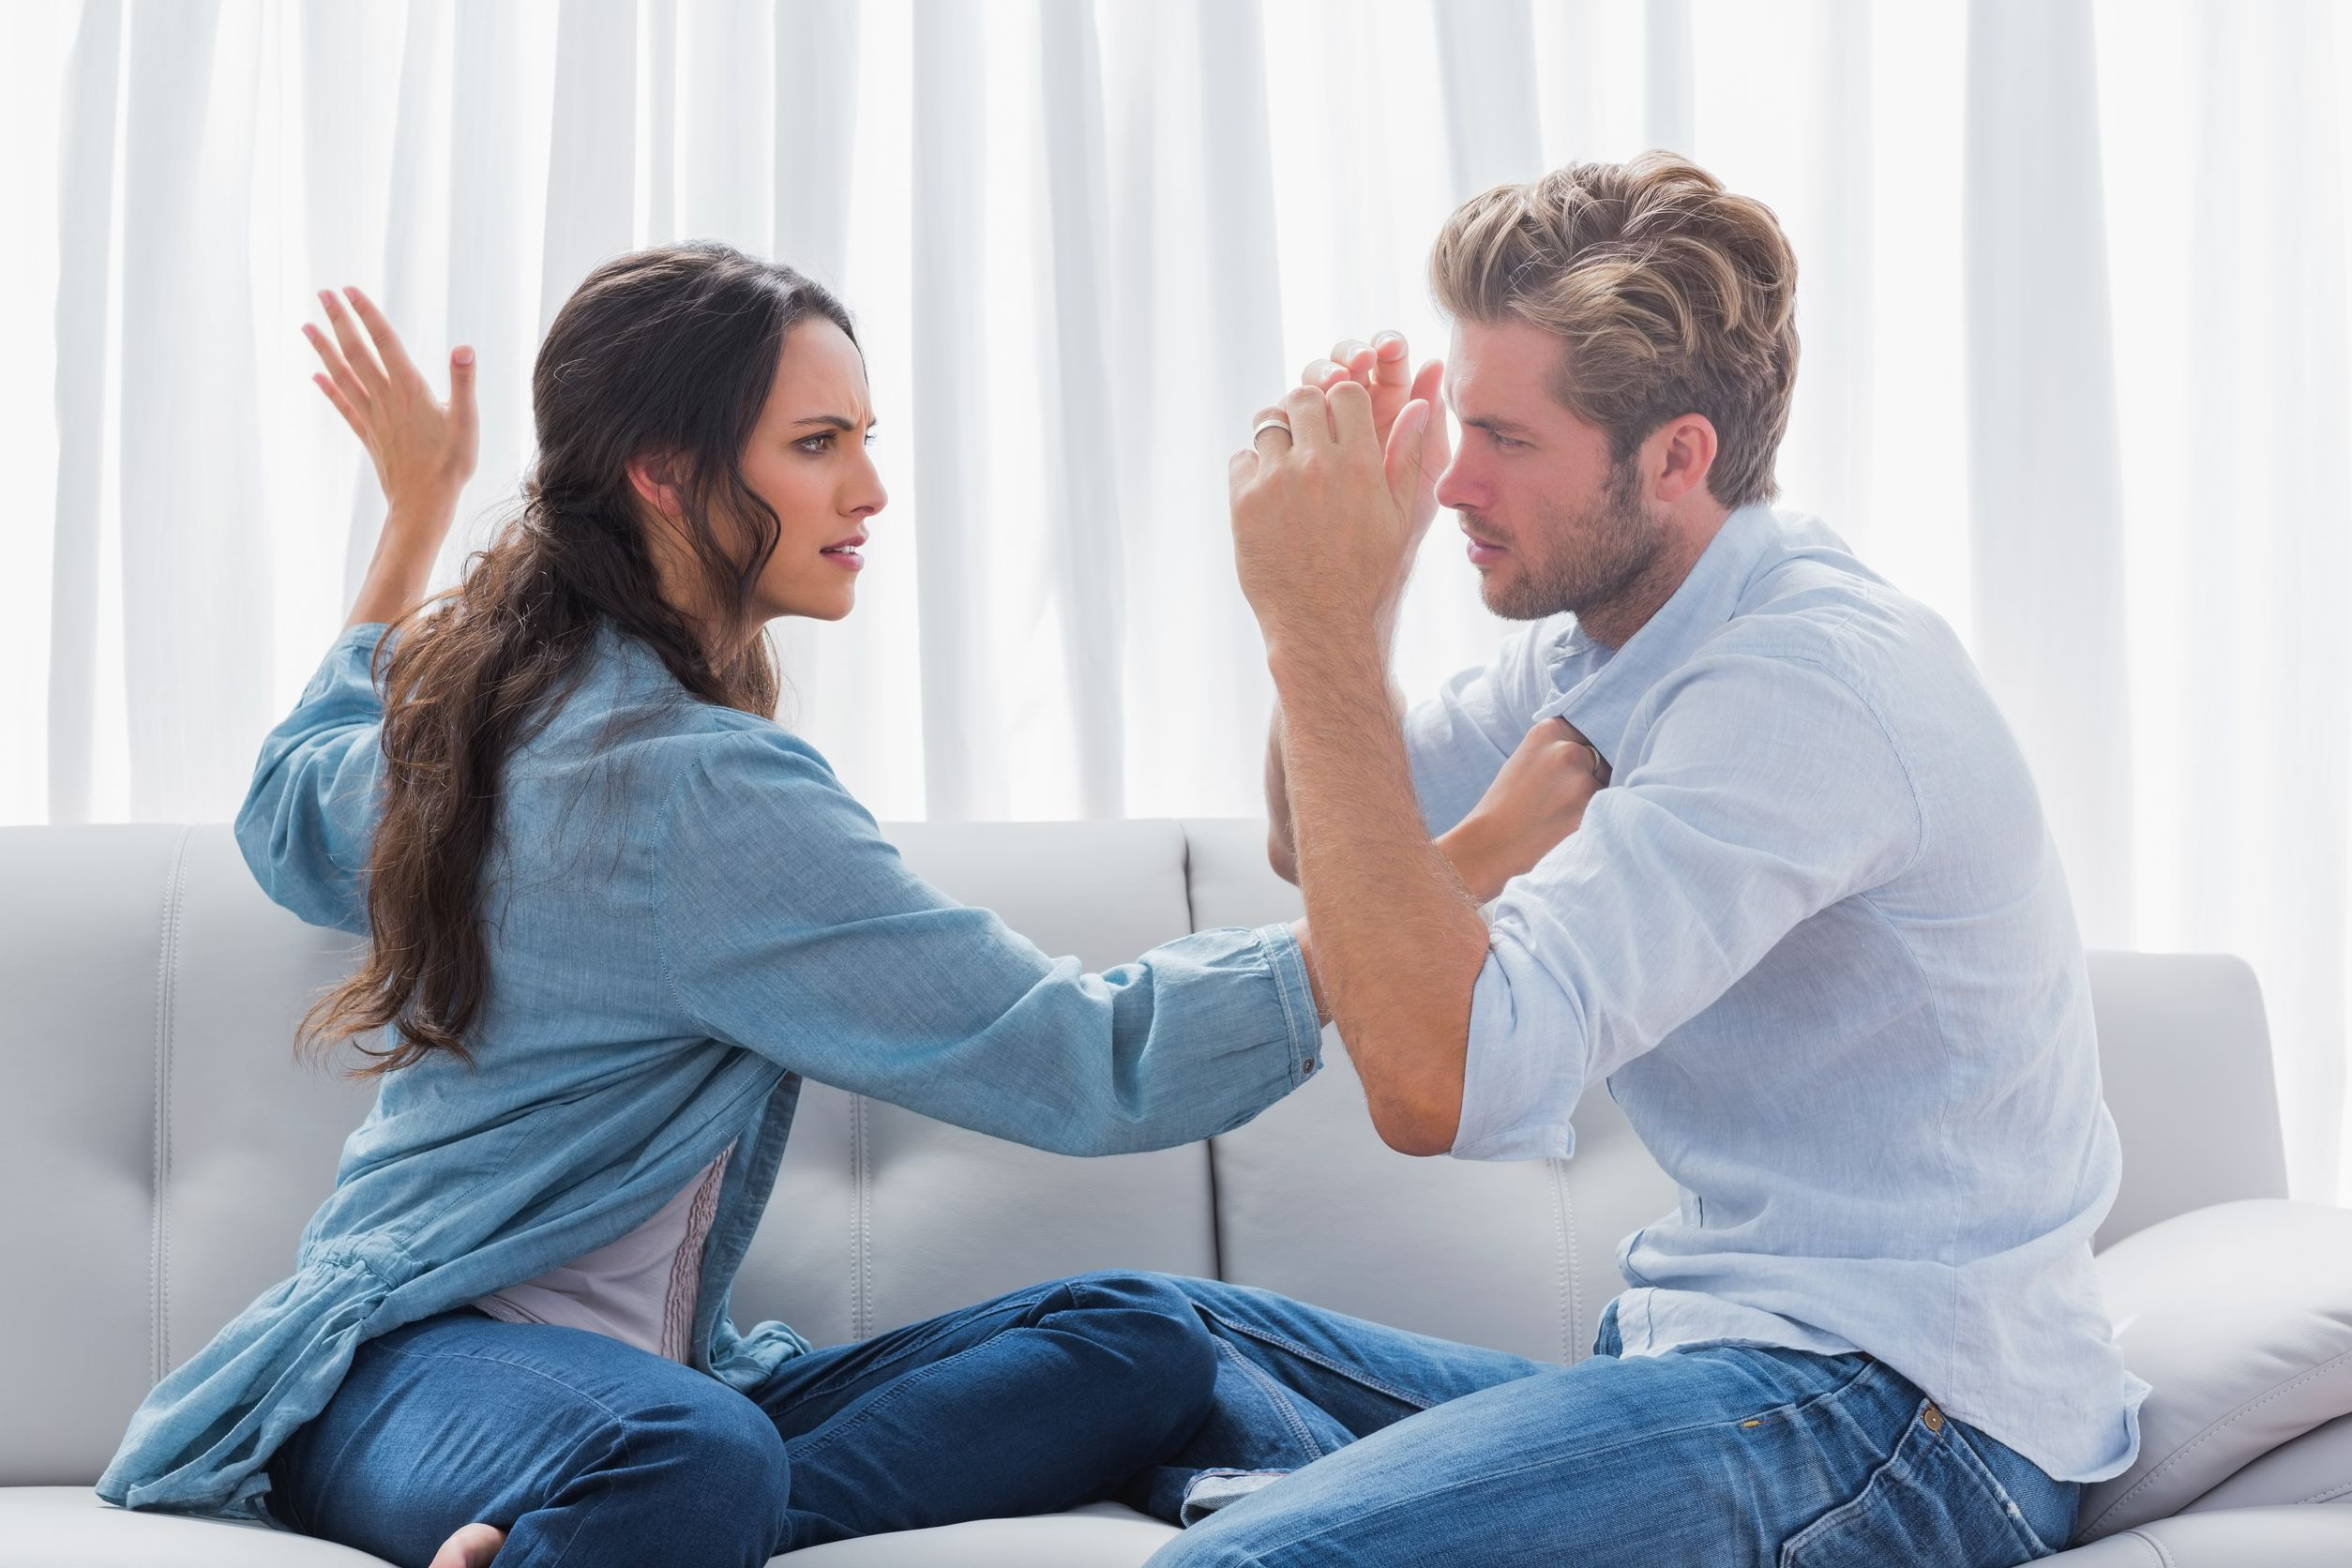 Dating Relationships And Infidelity Attitudes And Behaviors